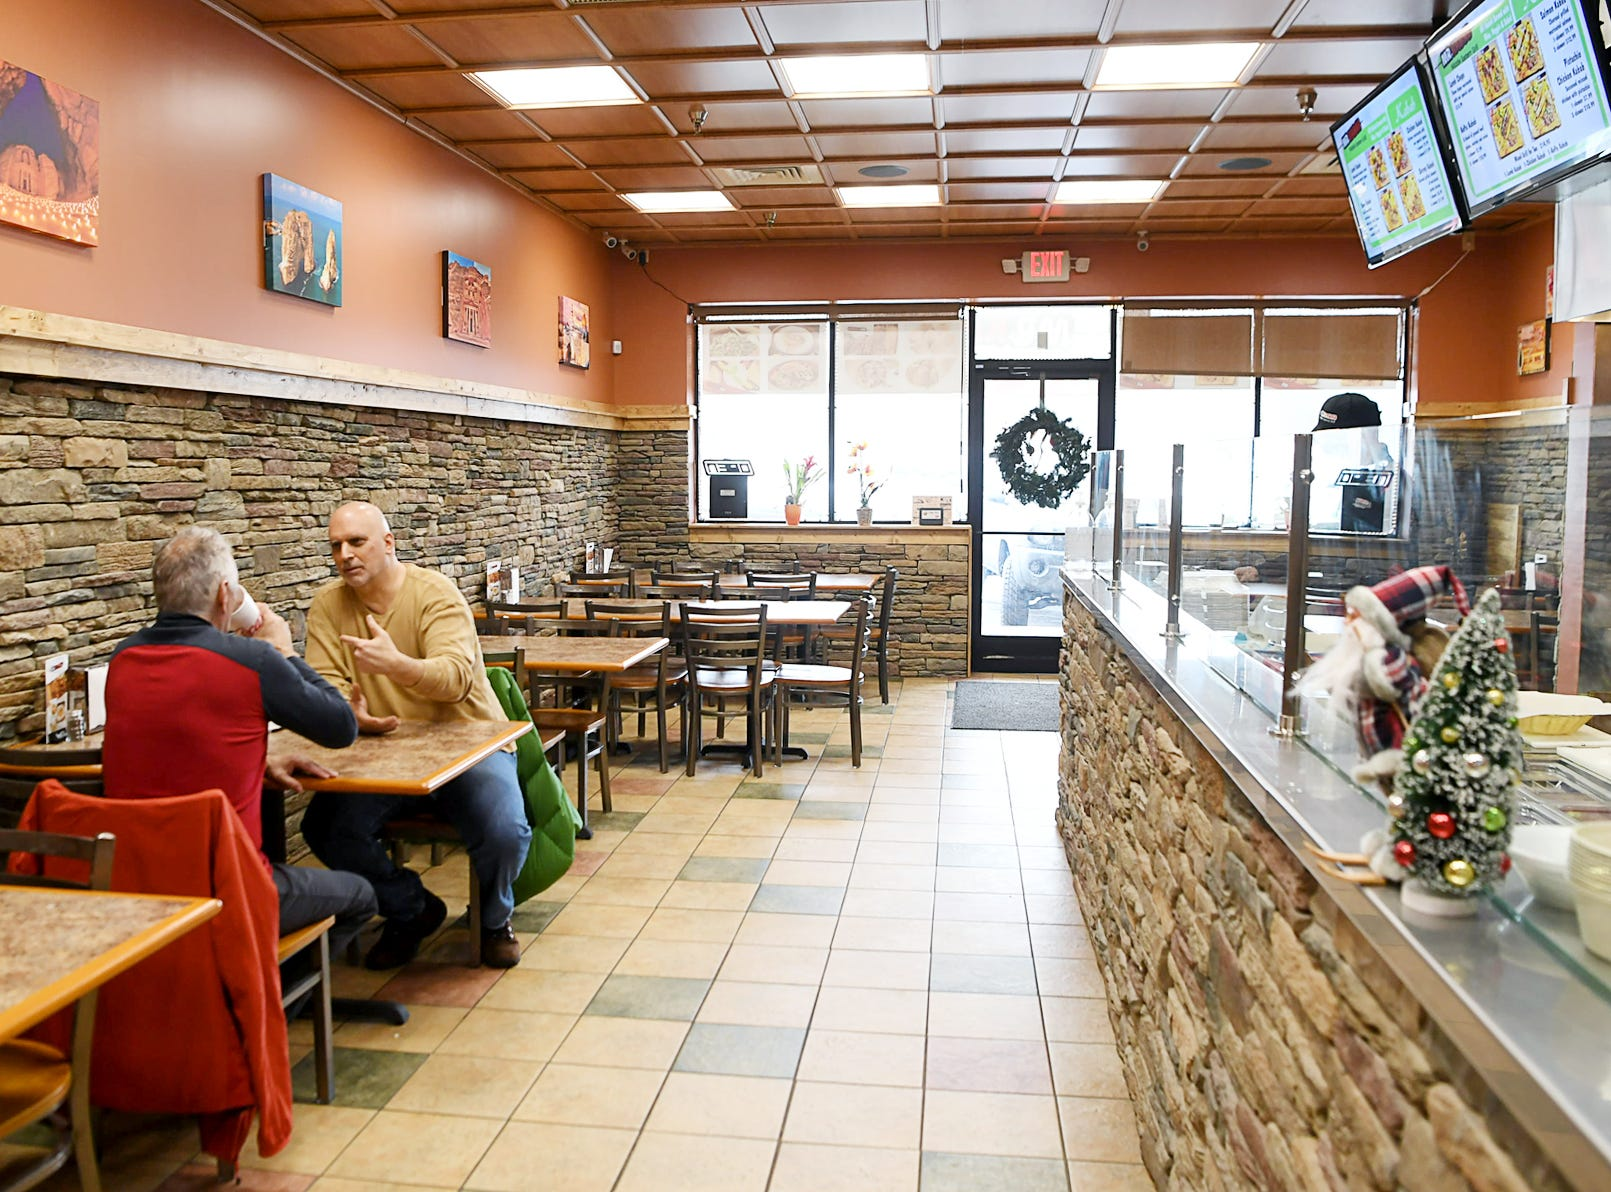 Inside Mr. Kabab, a new Middle Eastern restaurant in a strip mall in East Asheville Dec. 11, 2018.